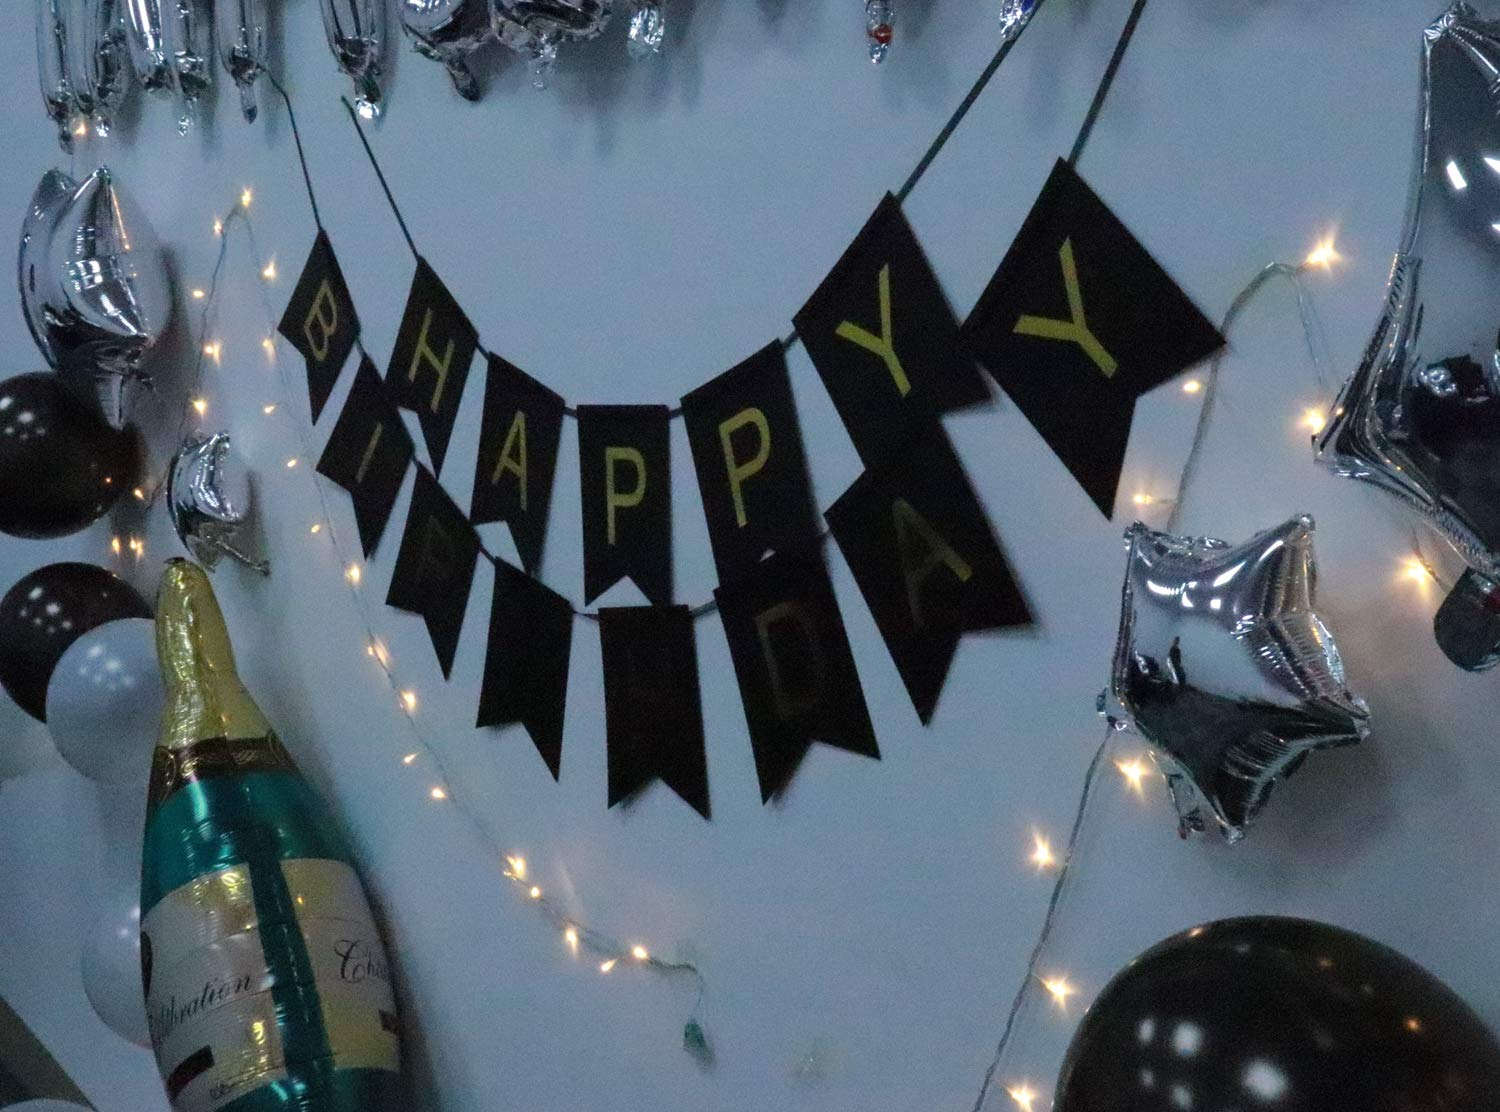 1st Birthday Decorations Kit First Boy Girl Black and Silver Birthday Decorations Led String Lights Sliver 1 Foil Balloon Birthday Banner Star Balloons Black and White Latex Balloons haimimall